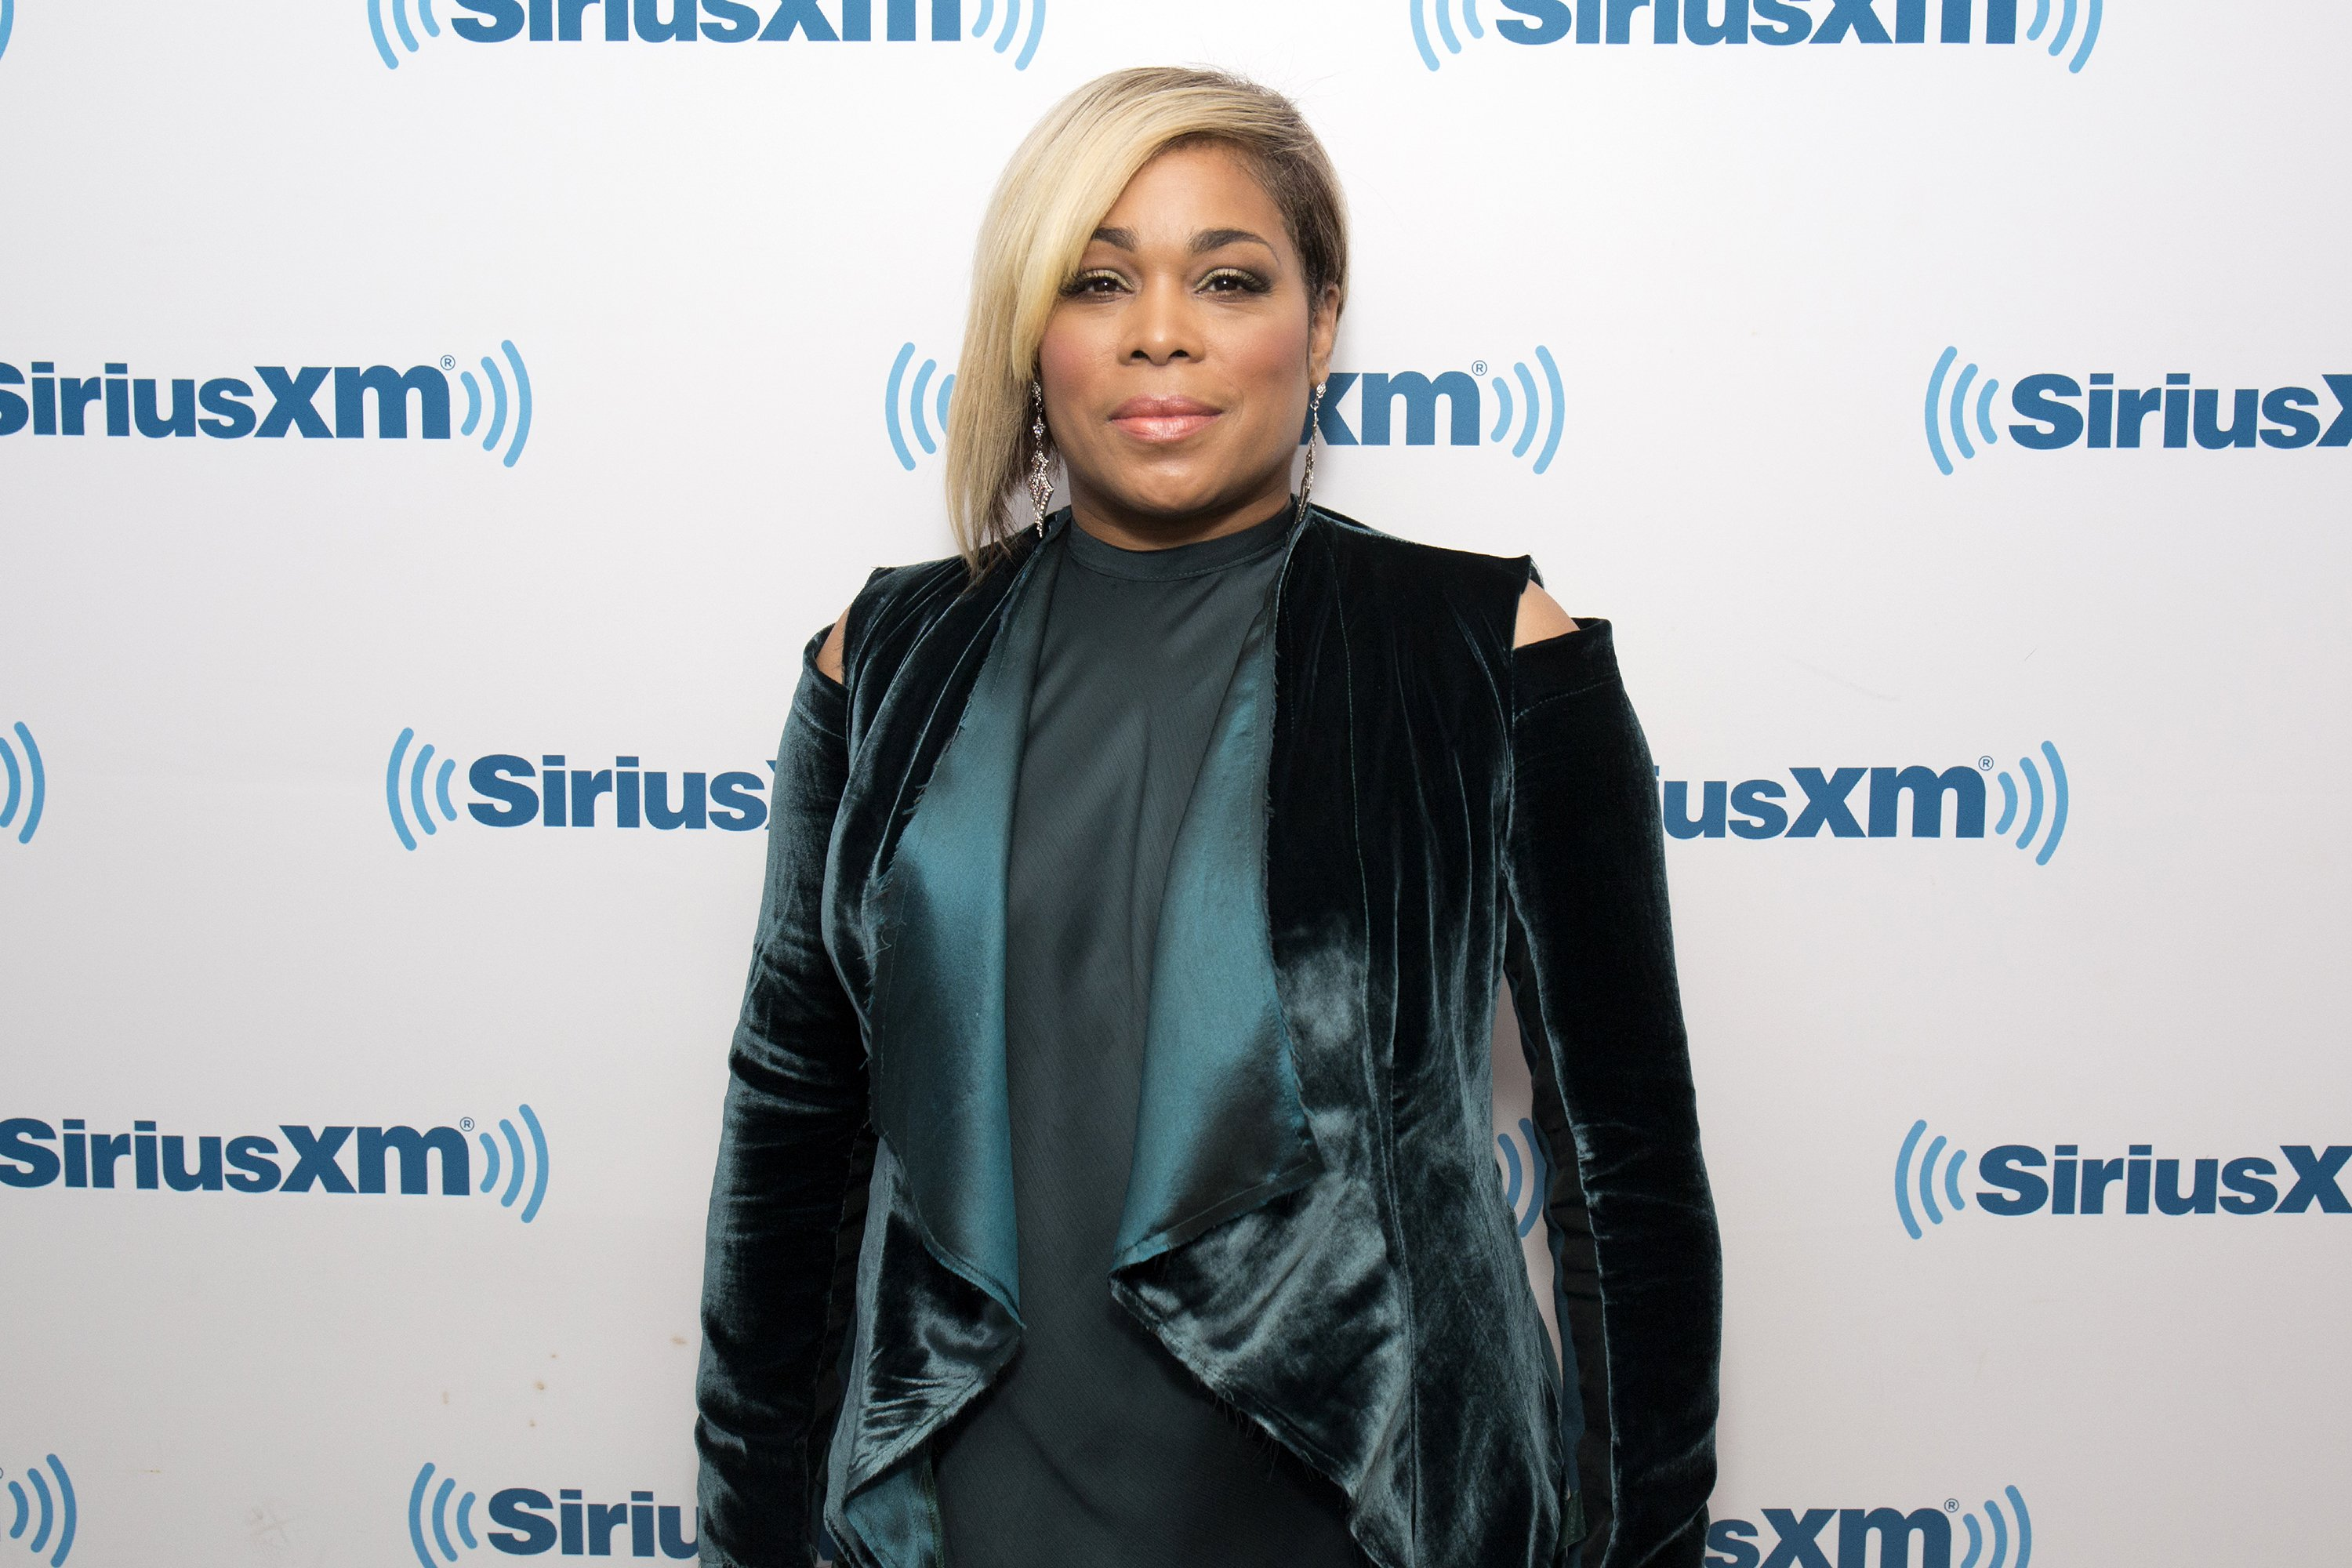 Tionne 'T-Boz' Watkins at the SiriusXM Studios on September 12, 2017 in New York City. | Photo: Getty Images